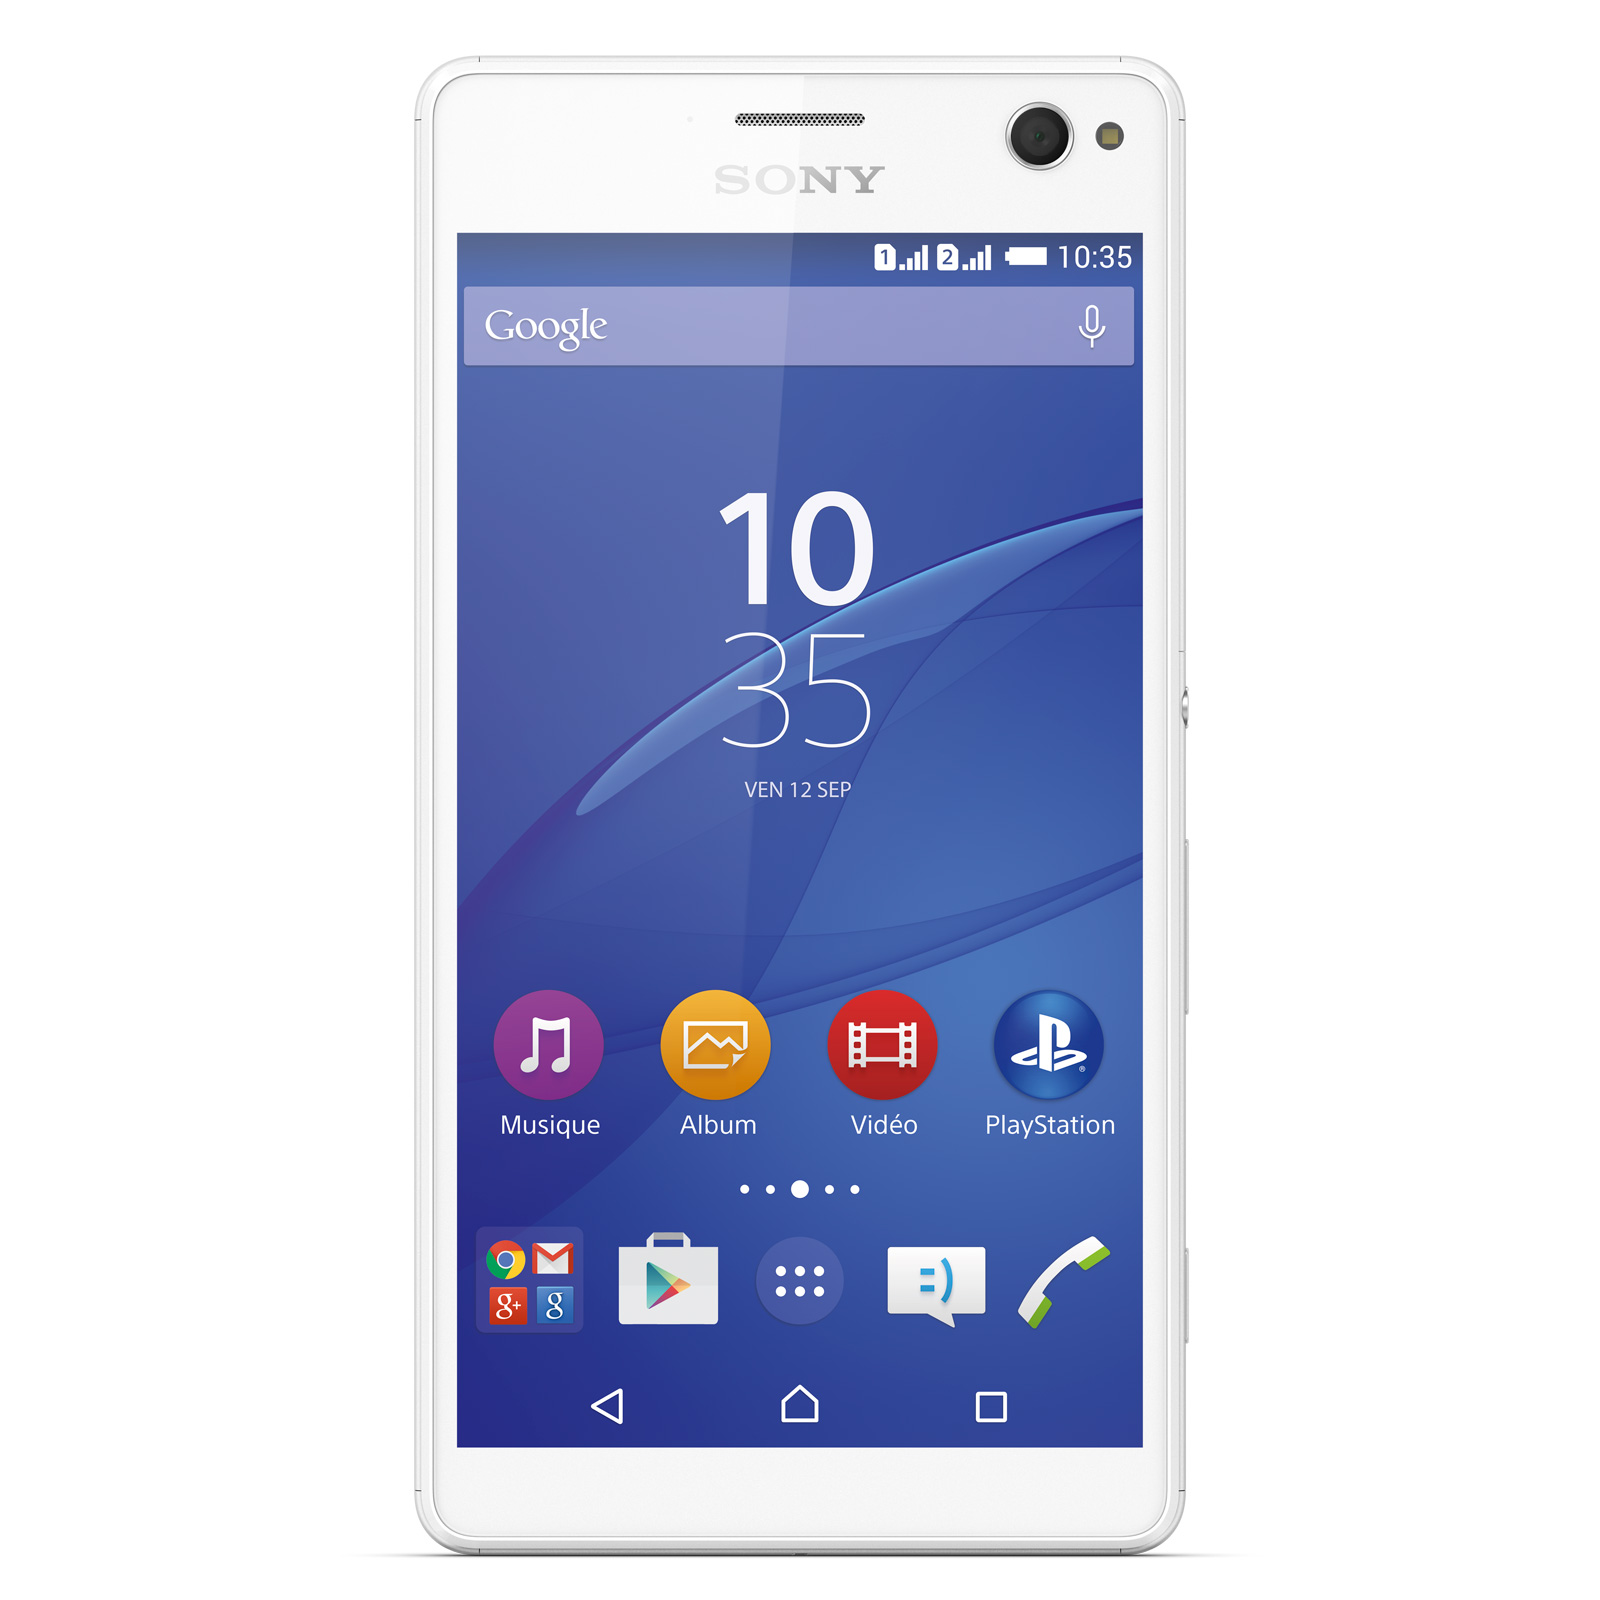 sony xperia c4 dual sim blanc mobile smartphone sony. Black Bedroom Furniture Sets. Home Design Ideas